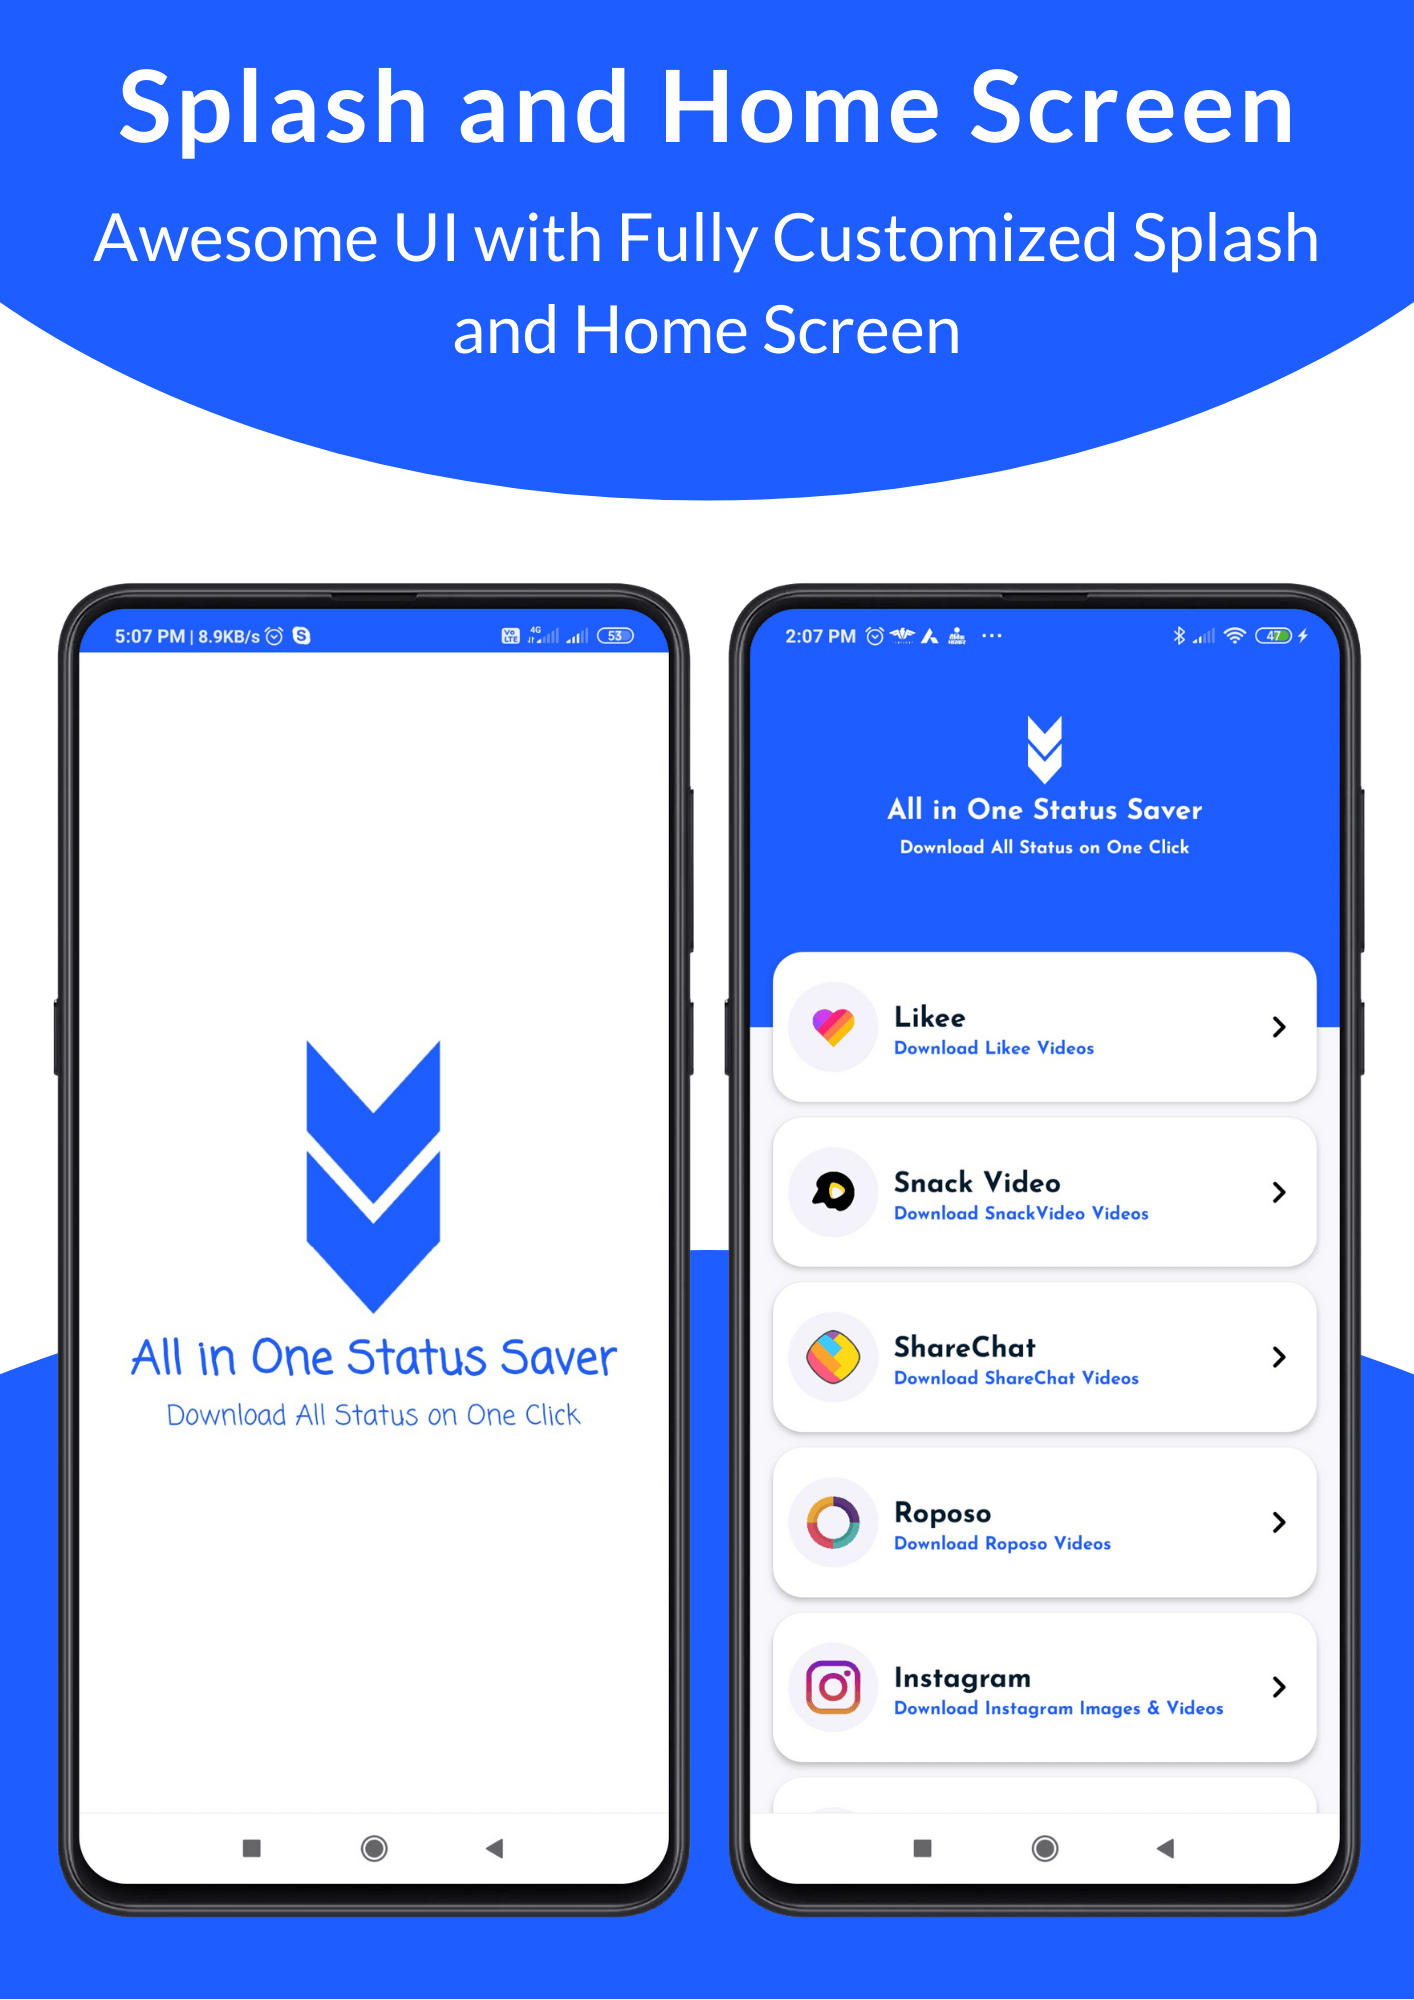 All in One Status Saver - SnackVideo, ShareChat, Roposo, Likee, Whatsapp, FB, Insta, TikTok, Twitter - 10